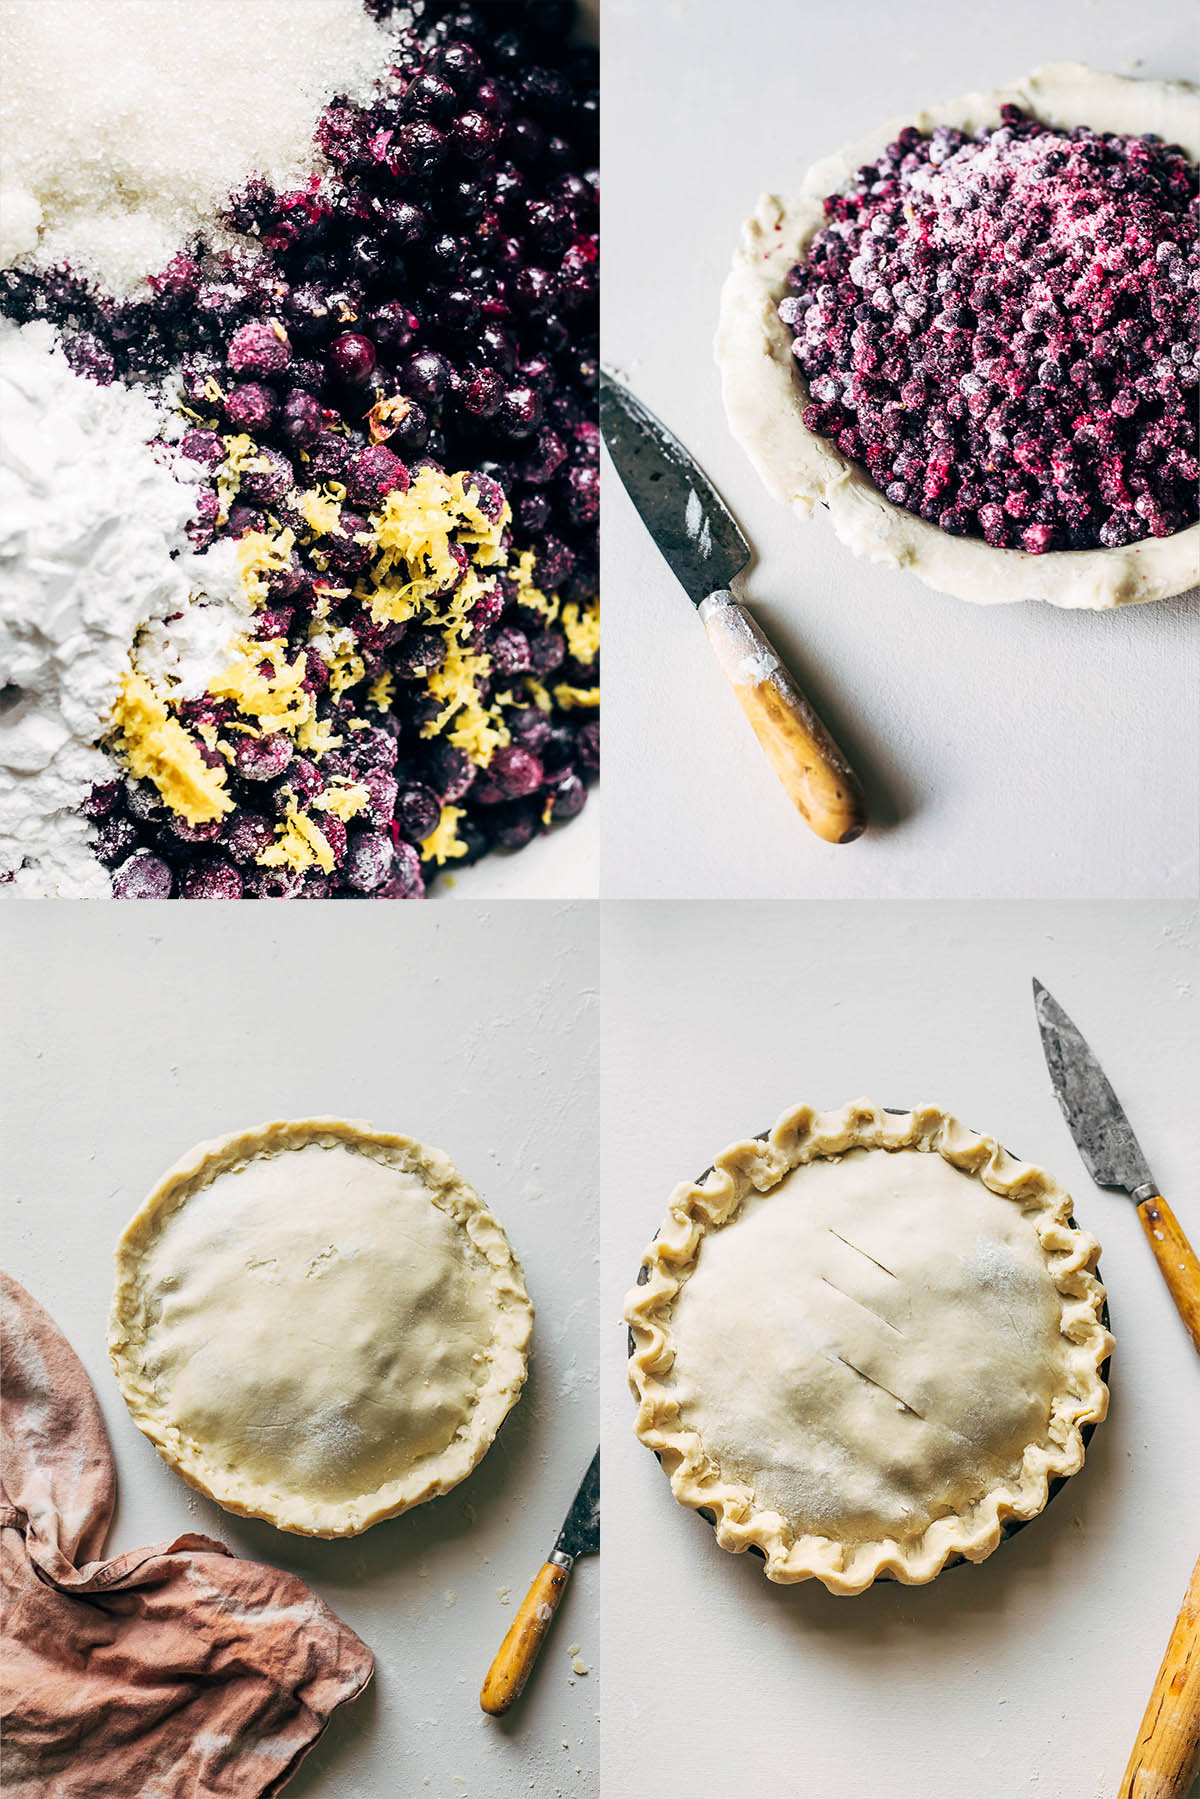 Four images showing frozen blueberries mixing with lemon zest and cornstarch, blueberry pie filling in a pie pan, and a pie with the top crust on.